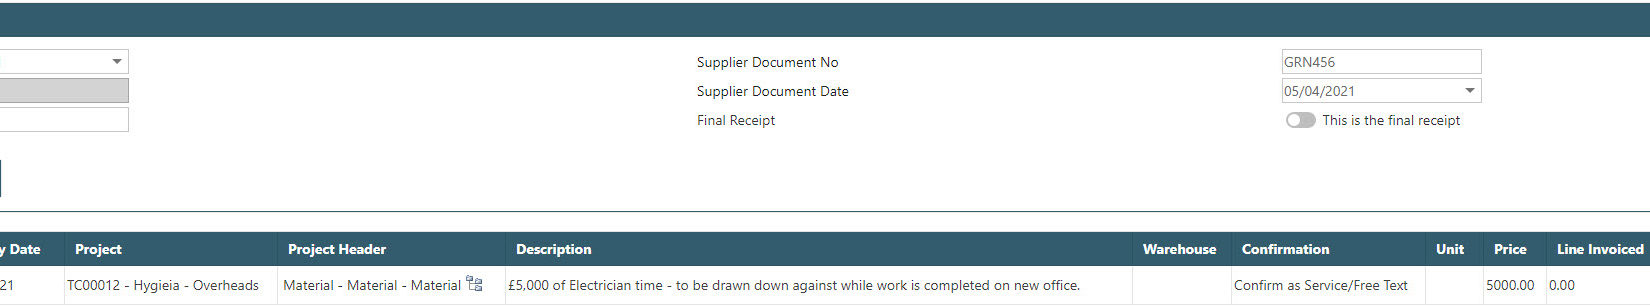 Sicon WAP Purchase Requisitions Help and User Guide - Requisition HUG Section 11.5 Image 1